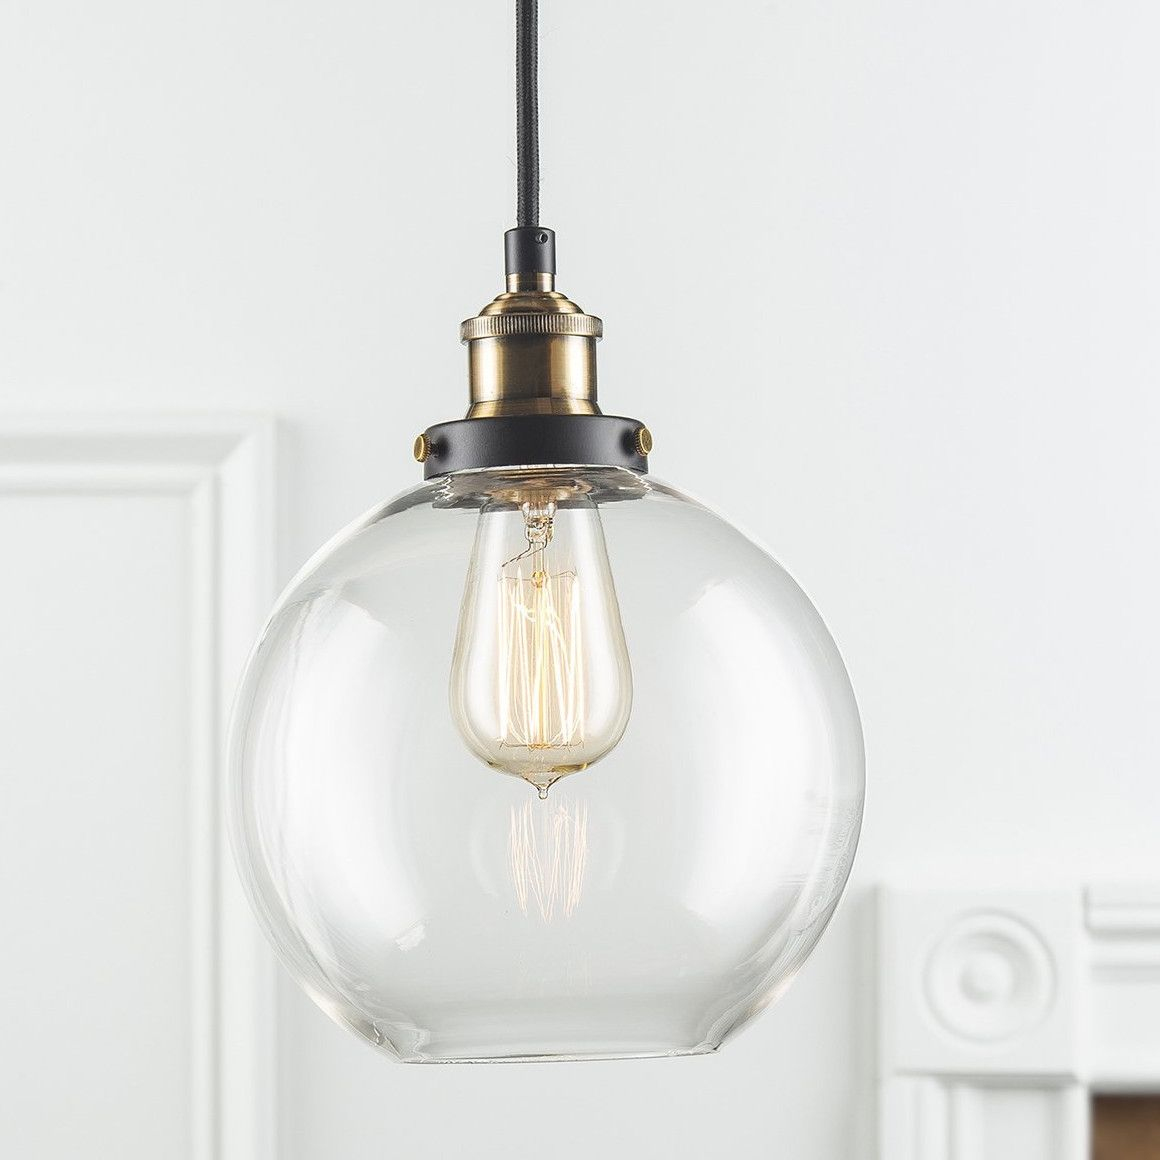 d23f8a66e837 -Classic factory lighting inspired pendant lamp. -Comes with universal  mounting plate. -Includes 8 ft field adjustable fabric wrapped cord.